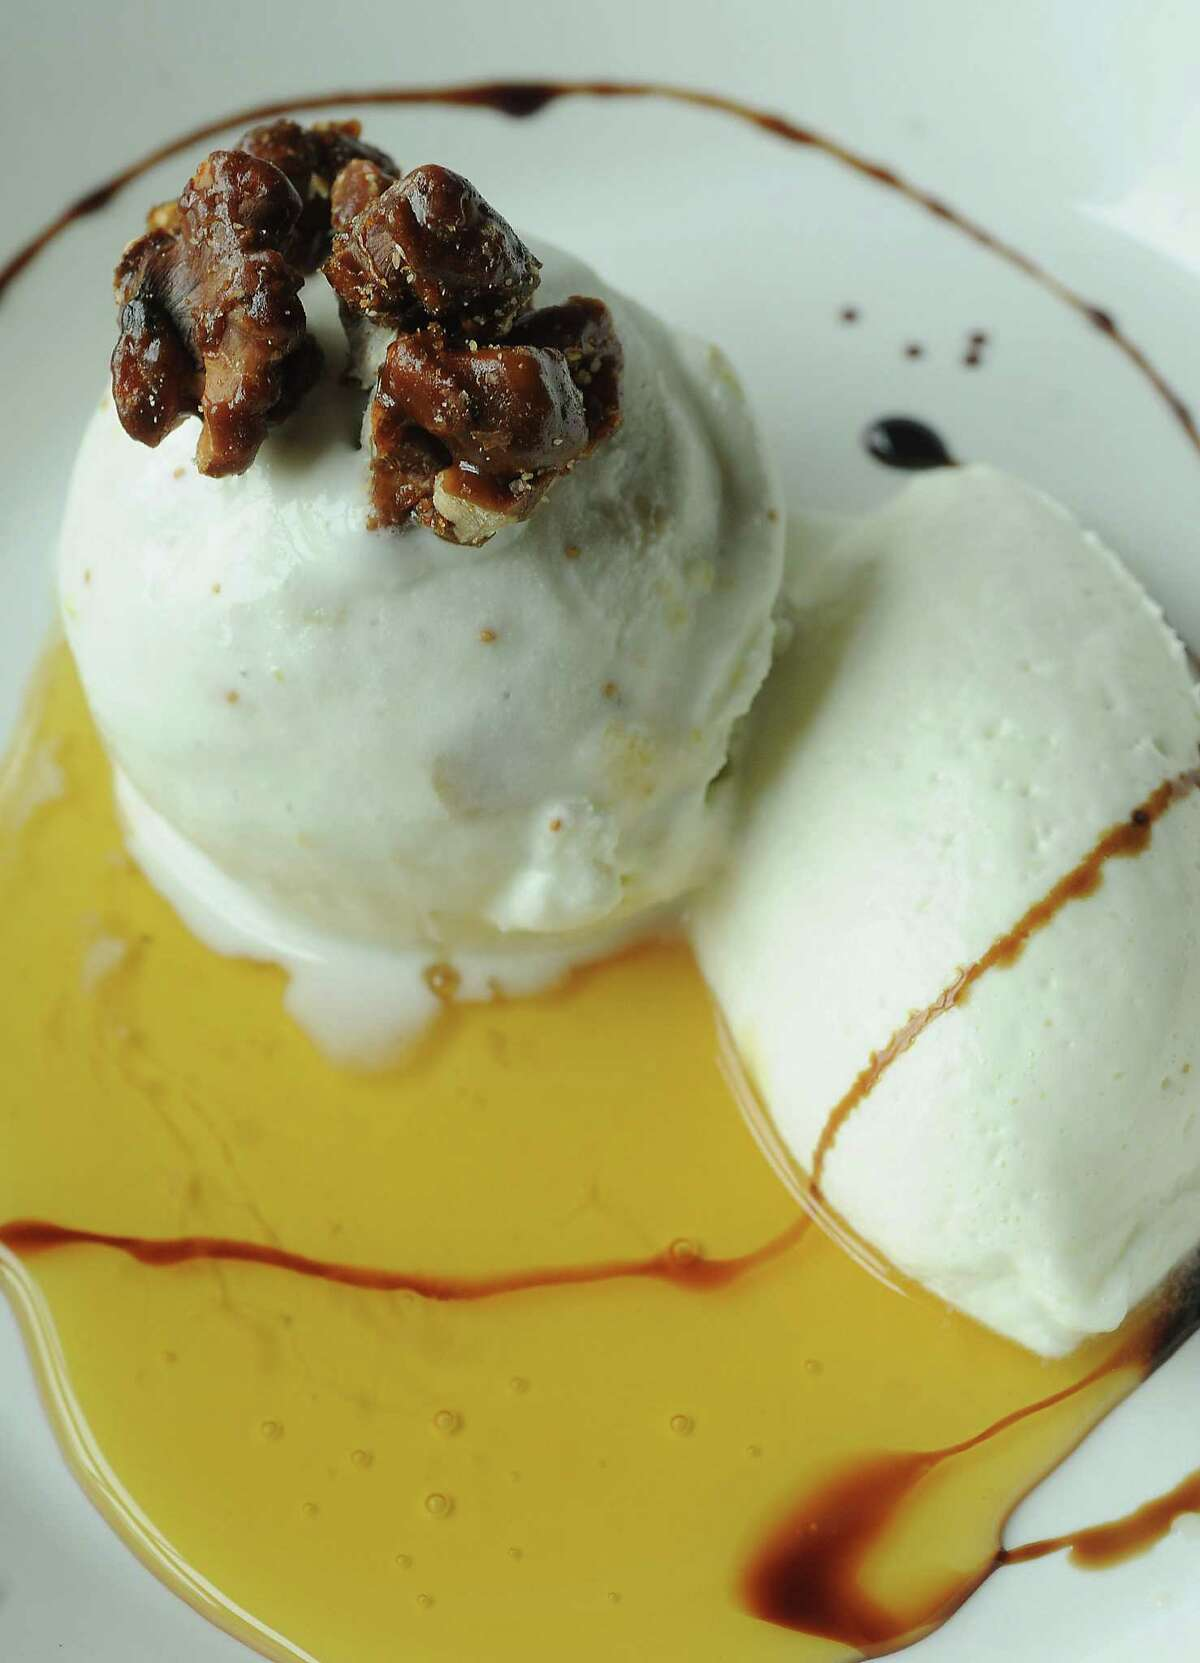 The fig gorgonzola dolce gelato with whipped cream, candied walnuts and honey at Weights & Measures Thursday April 23, 2015.(Dave Rossman photo)